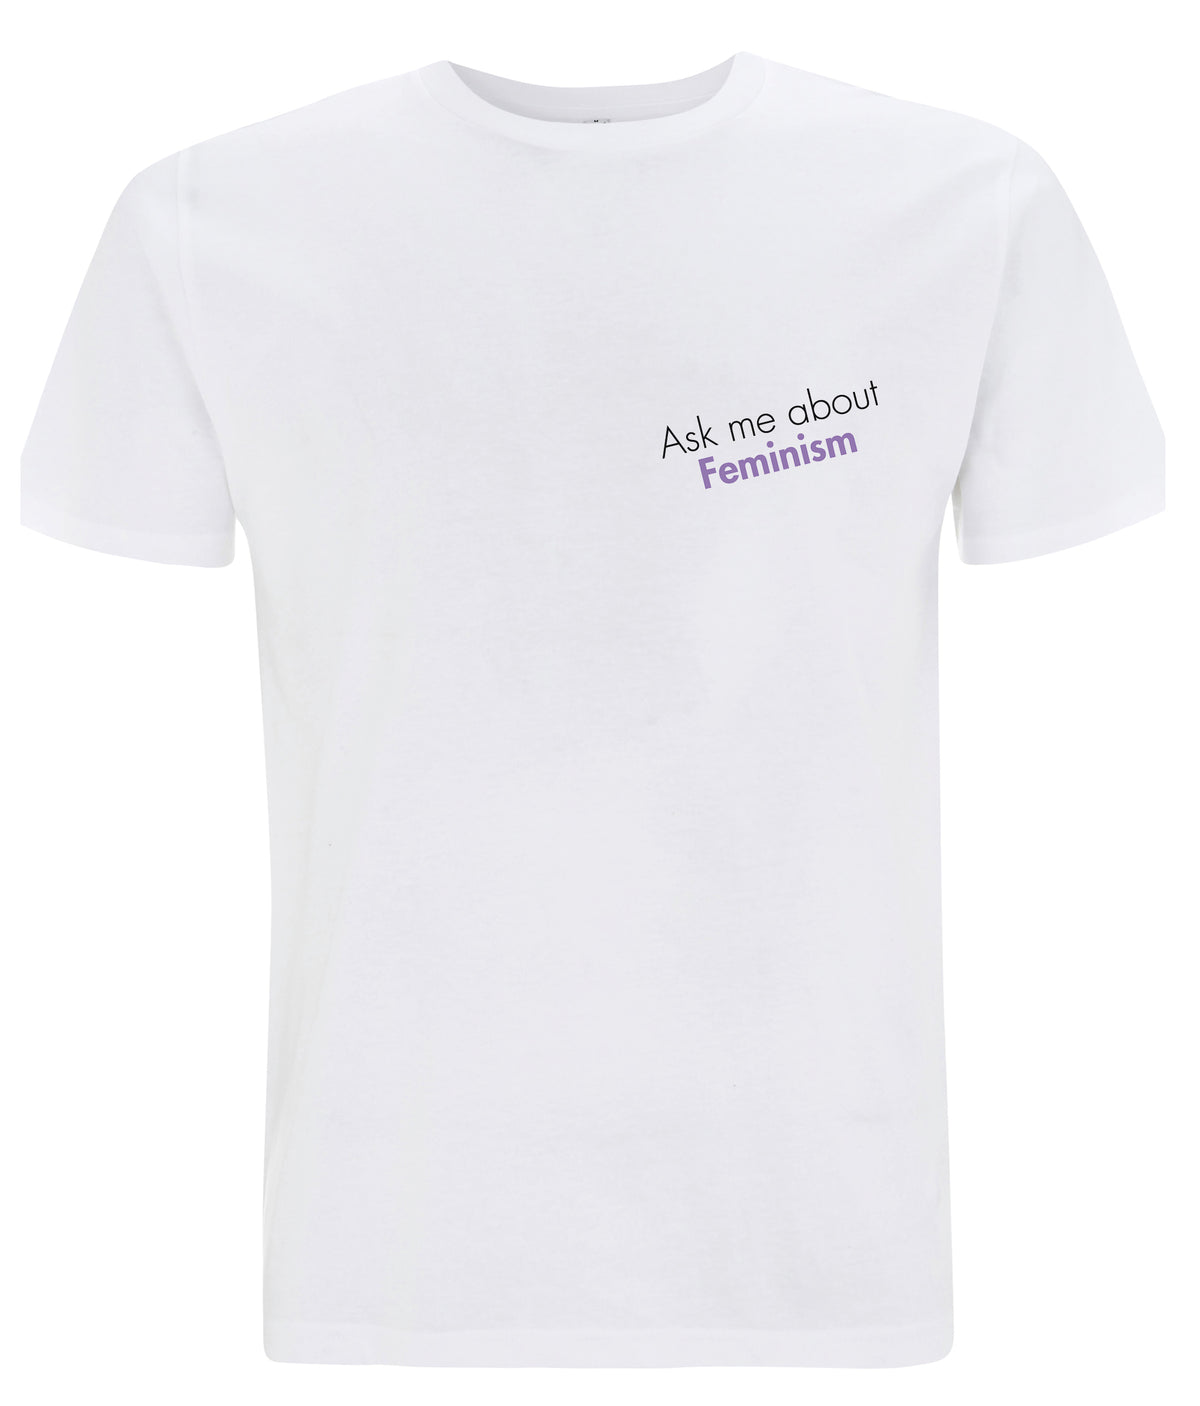 Ask Me About Feminism Organic Feminist T Shirt White